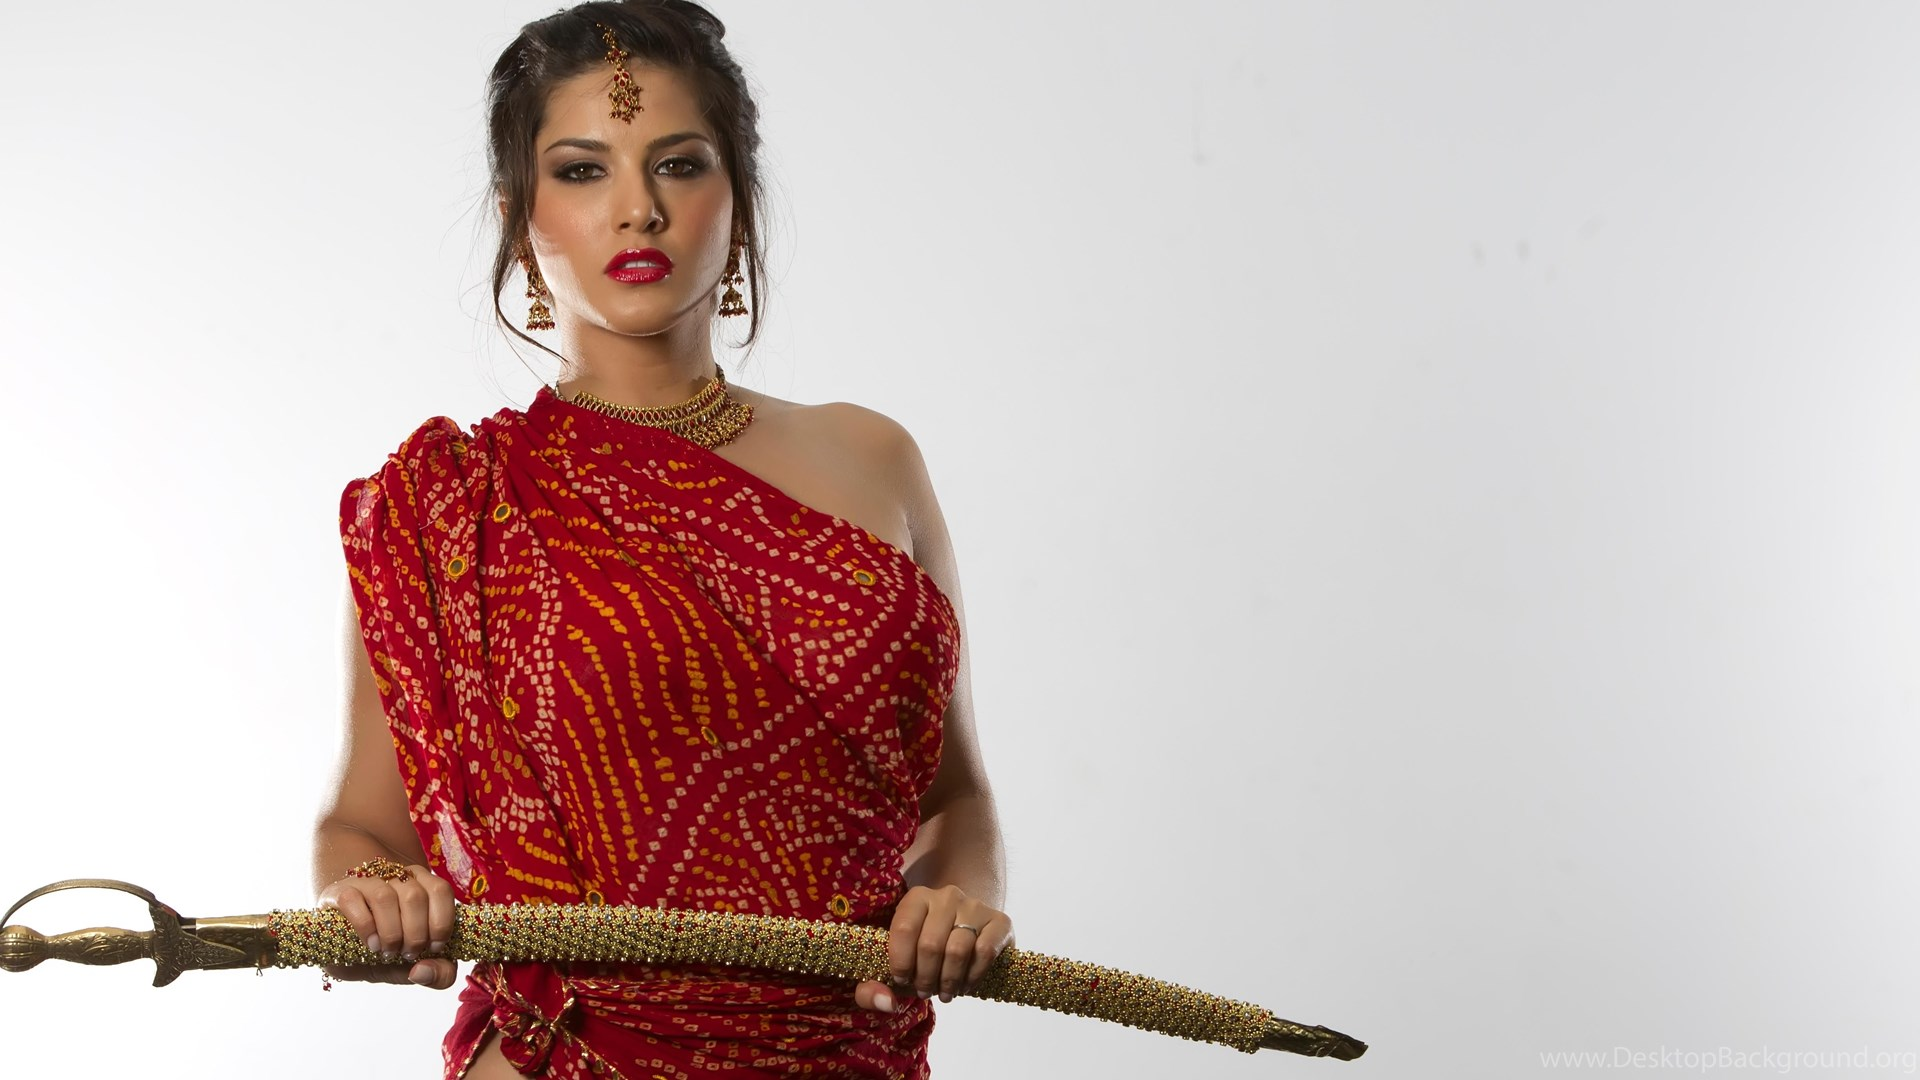 Desi Sunny Leone With Sword Wallpapers Desktop Background